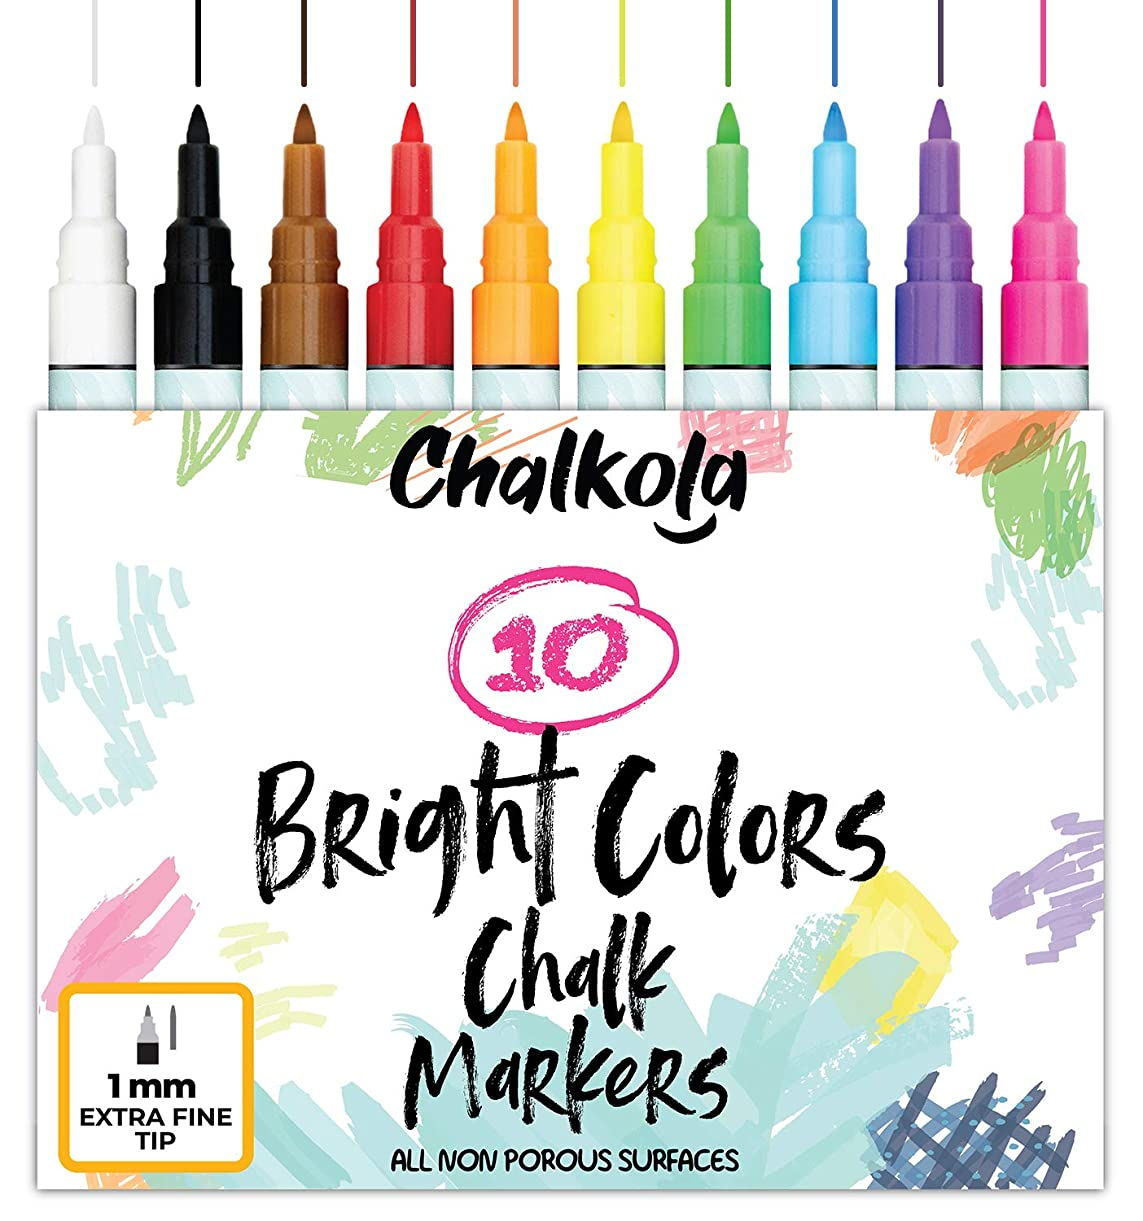 1mm Extra Fine Tip Chalk Markers - Pack of 10 neon Color pens | Non-Toxic, Wet Wipe | For Chalkboard, Window, Blackboards, Glass uohzf7184